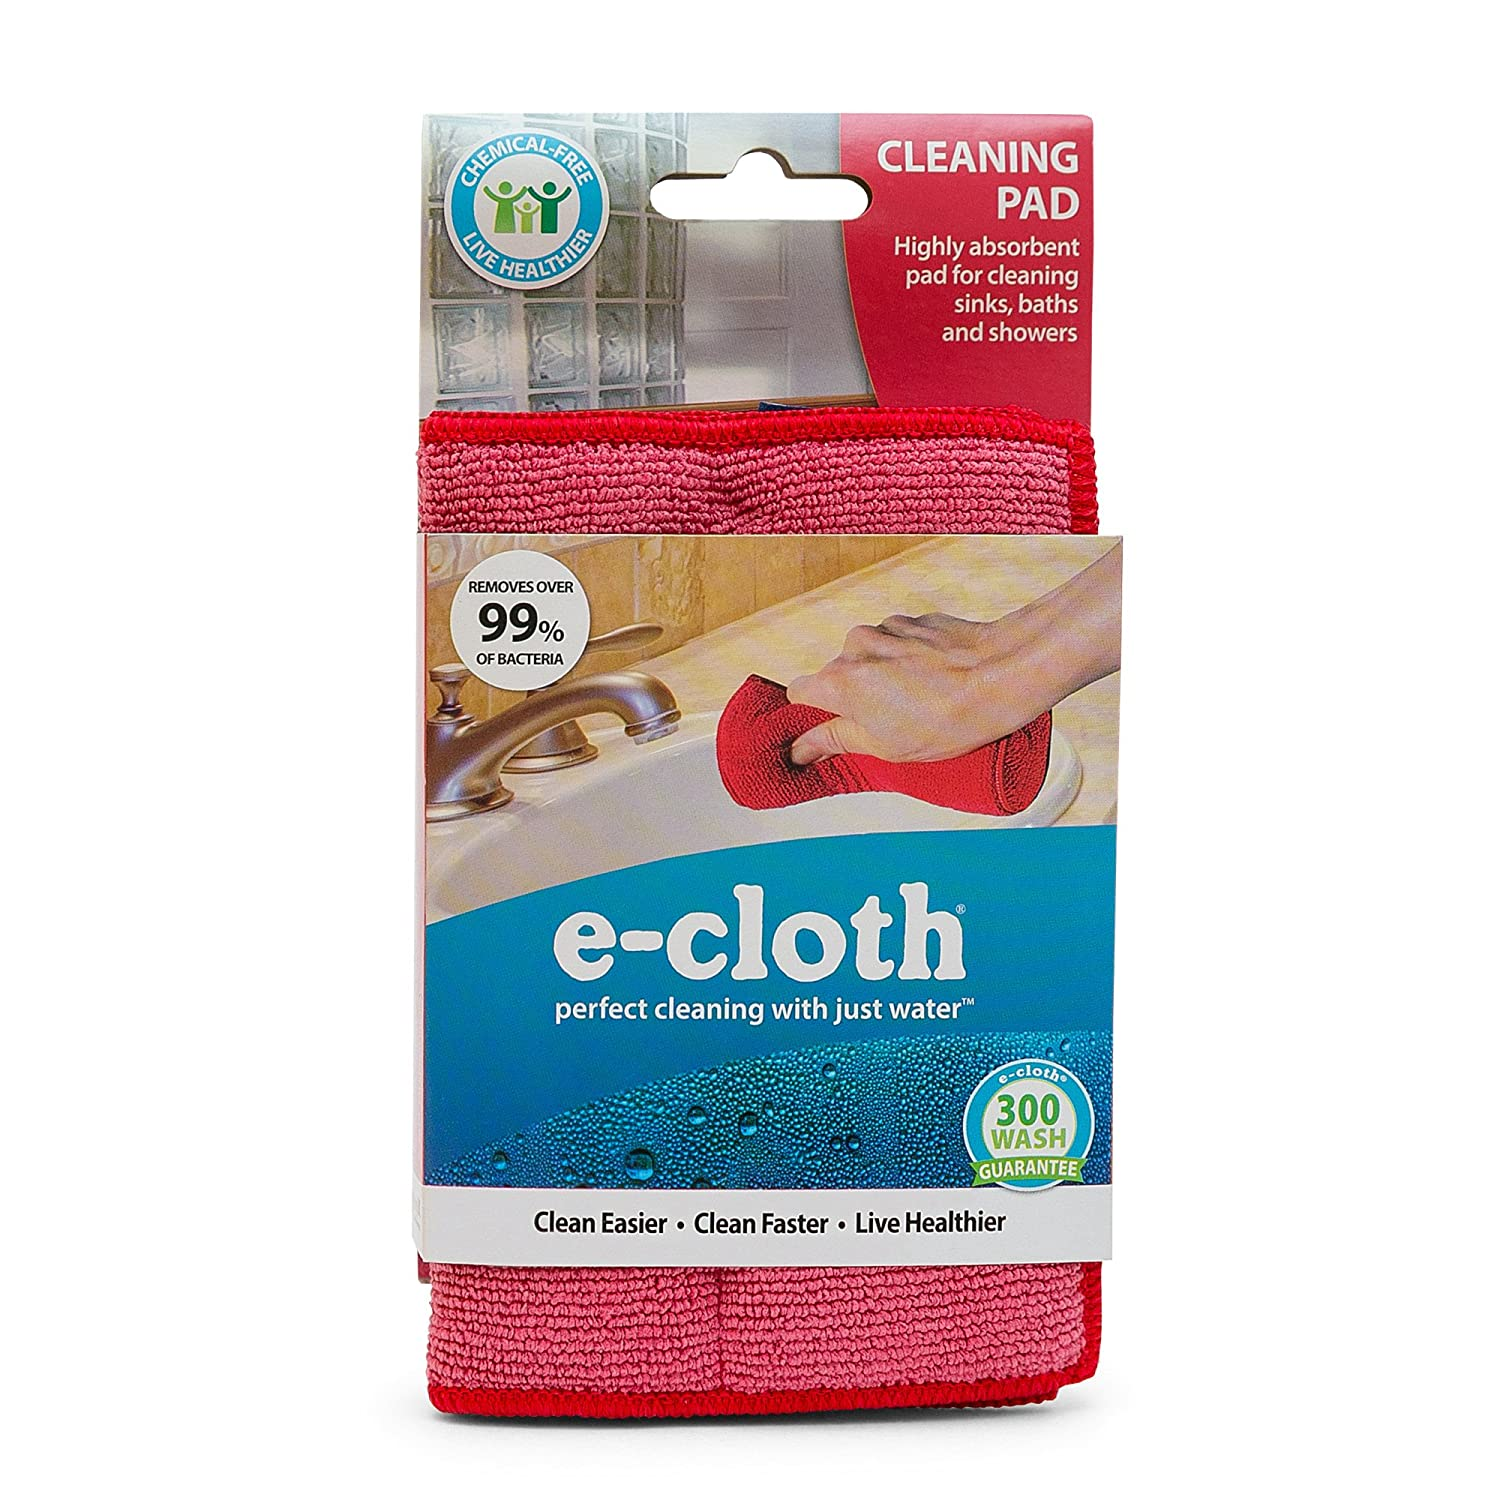 Amazon.com: E-Cloth Cleaning Pad, Perfect Chemical Free Cleaning ...